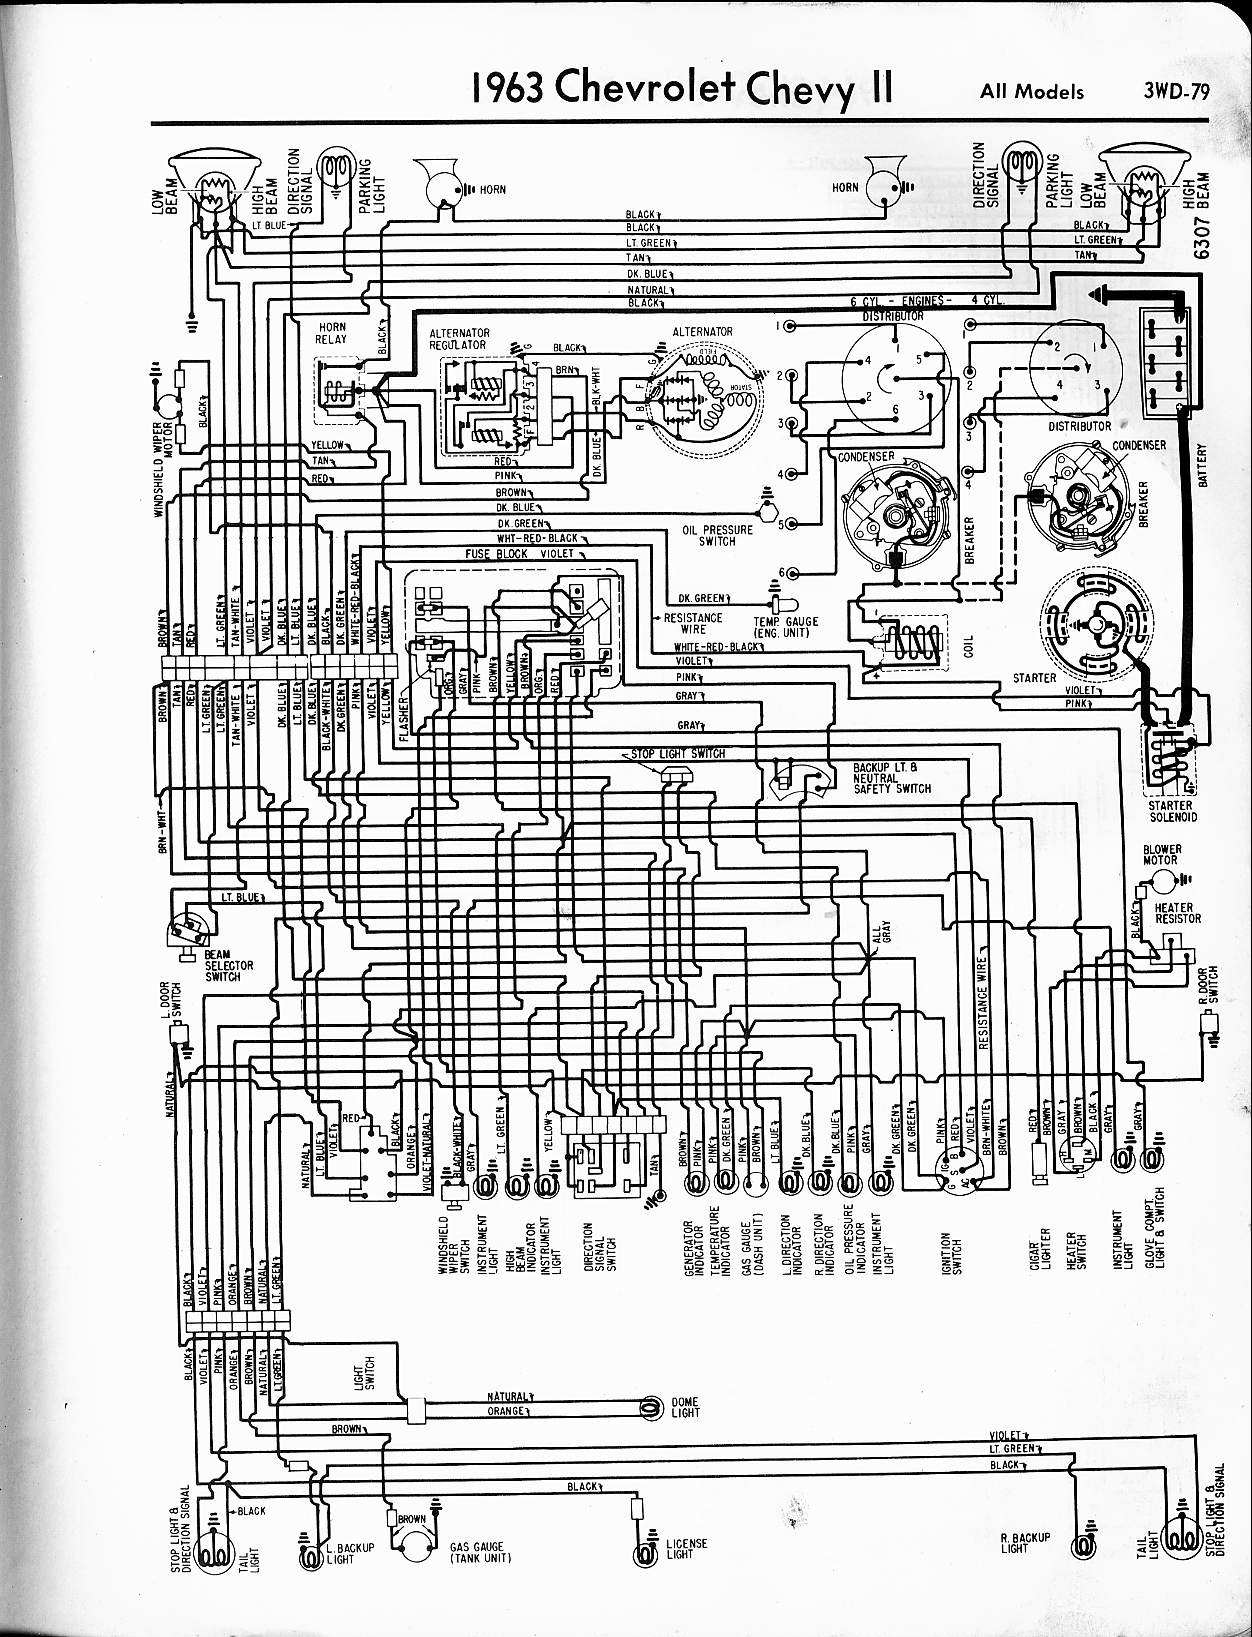 MWireChev63_3WD 079 57 65 chevy wiring diagrams 1962 chevy truck wiring diagram at readyjetset.co